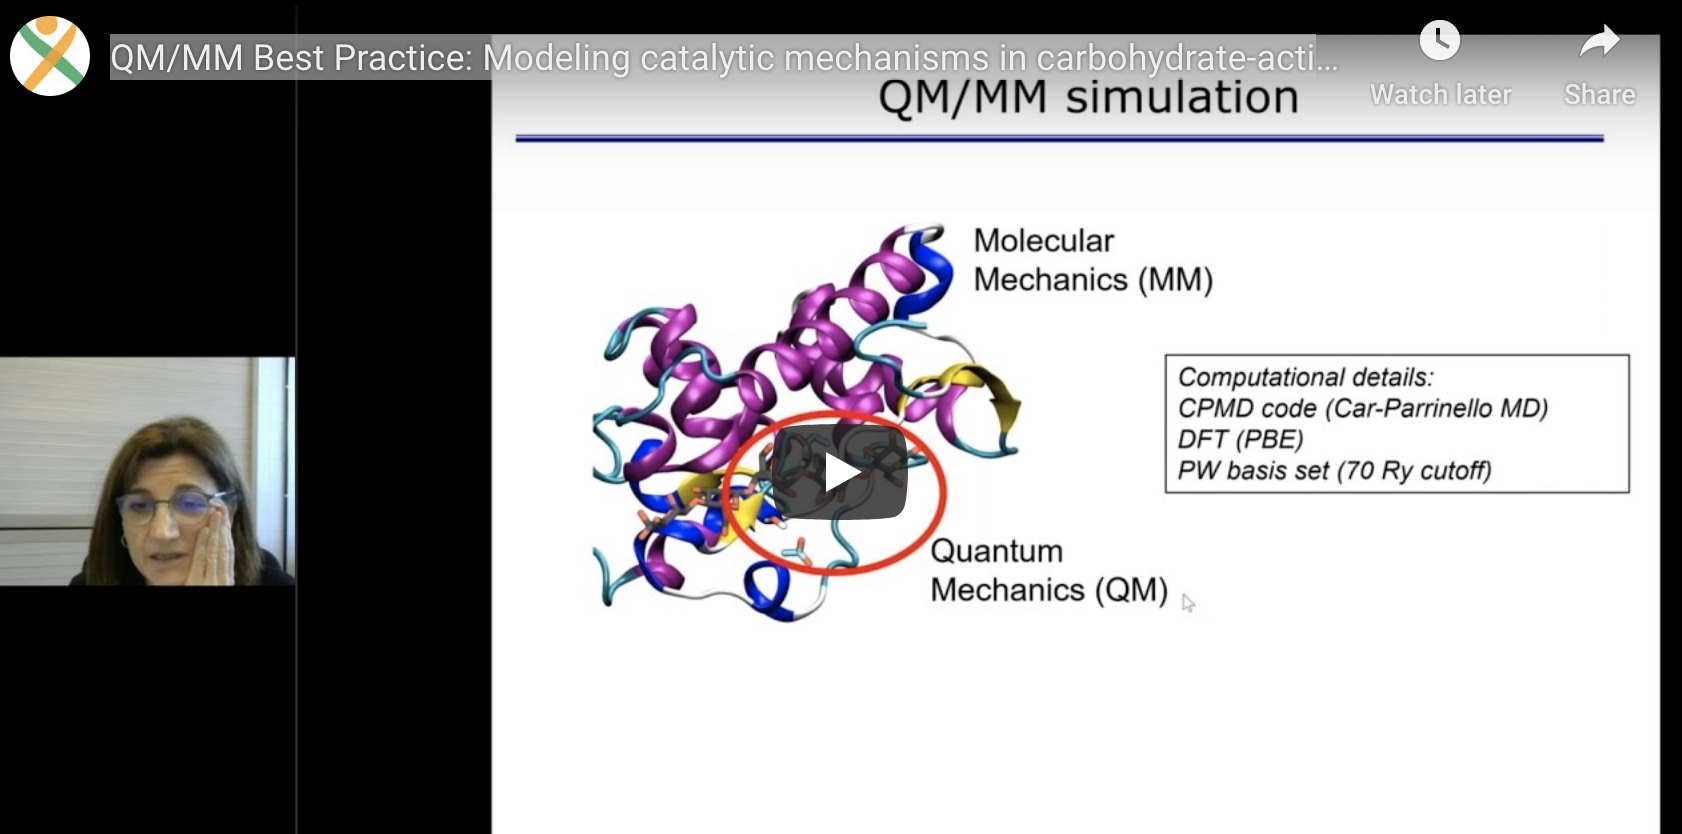 woman on the left and slide of her talk displaying QM/MM simulation on the right